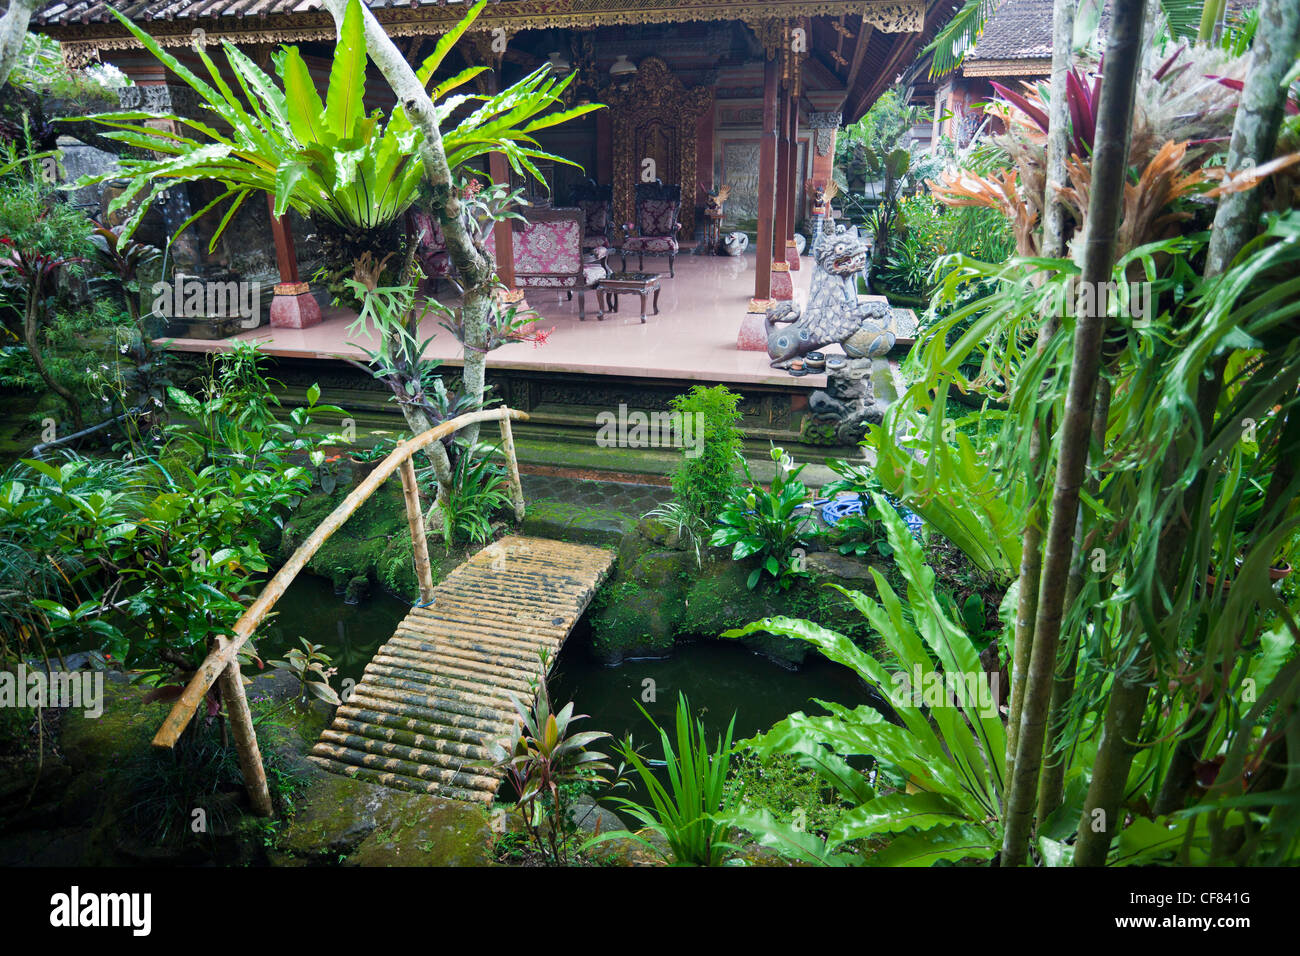 Indonesia Asia Bali island Ubud Local garden living